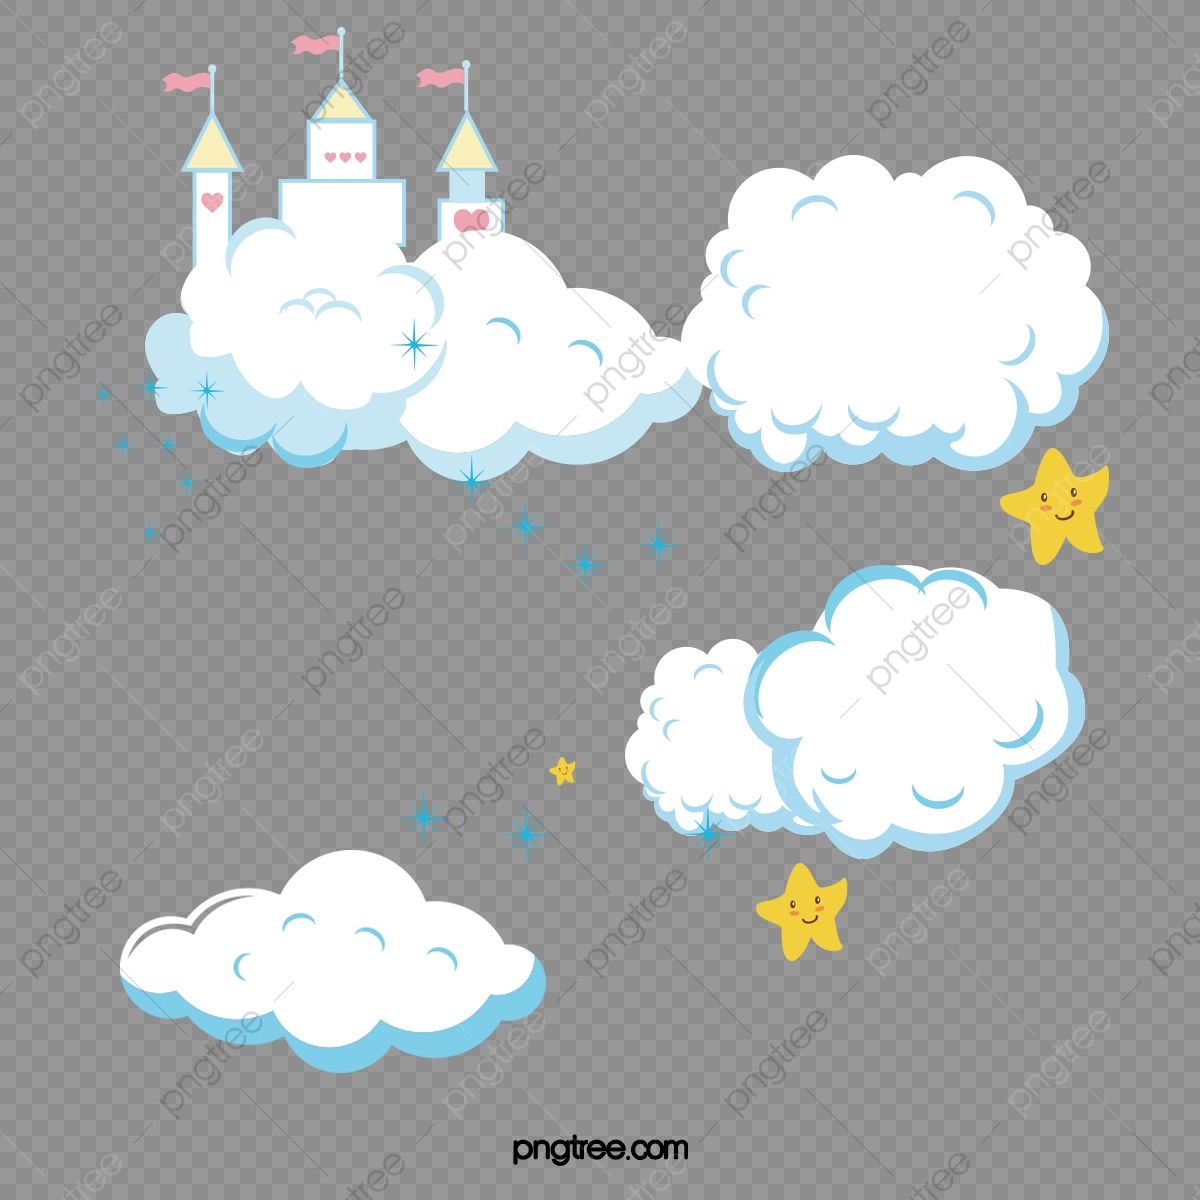 Cartoon Clouds Clouds Baiyun Clouds Png Transparent Clipart Image And Psd File For Free Download